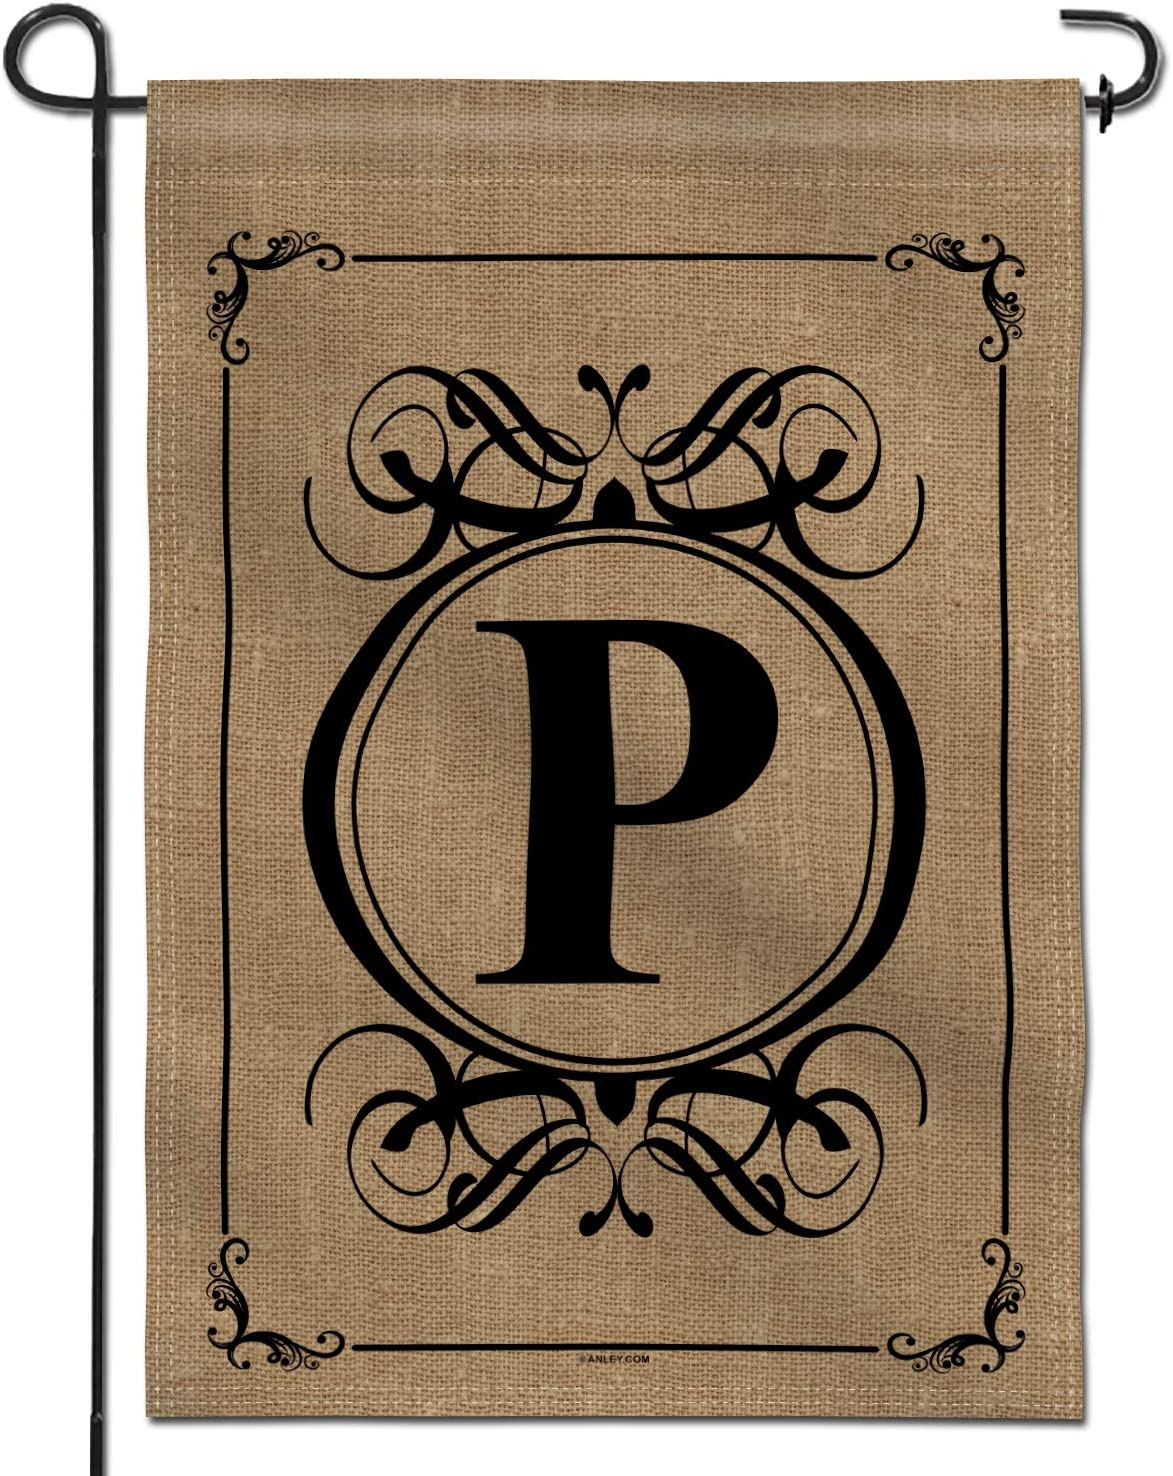 Anley Classic Monogram Letter P Garden Flag, Double Sided Family Last Name Initial Yard Flags - Personalized Welcome Home Decor - Weather Resistant & Double Stitched - 18 x 12.5 Inch